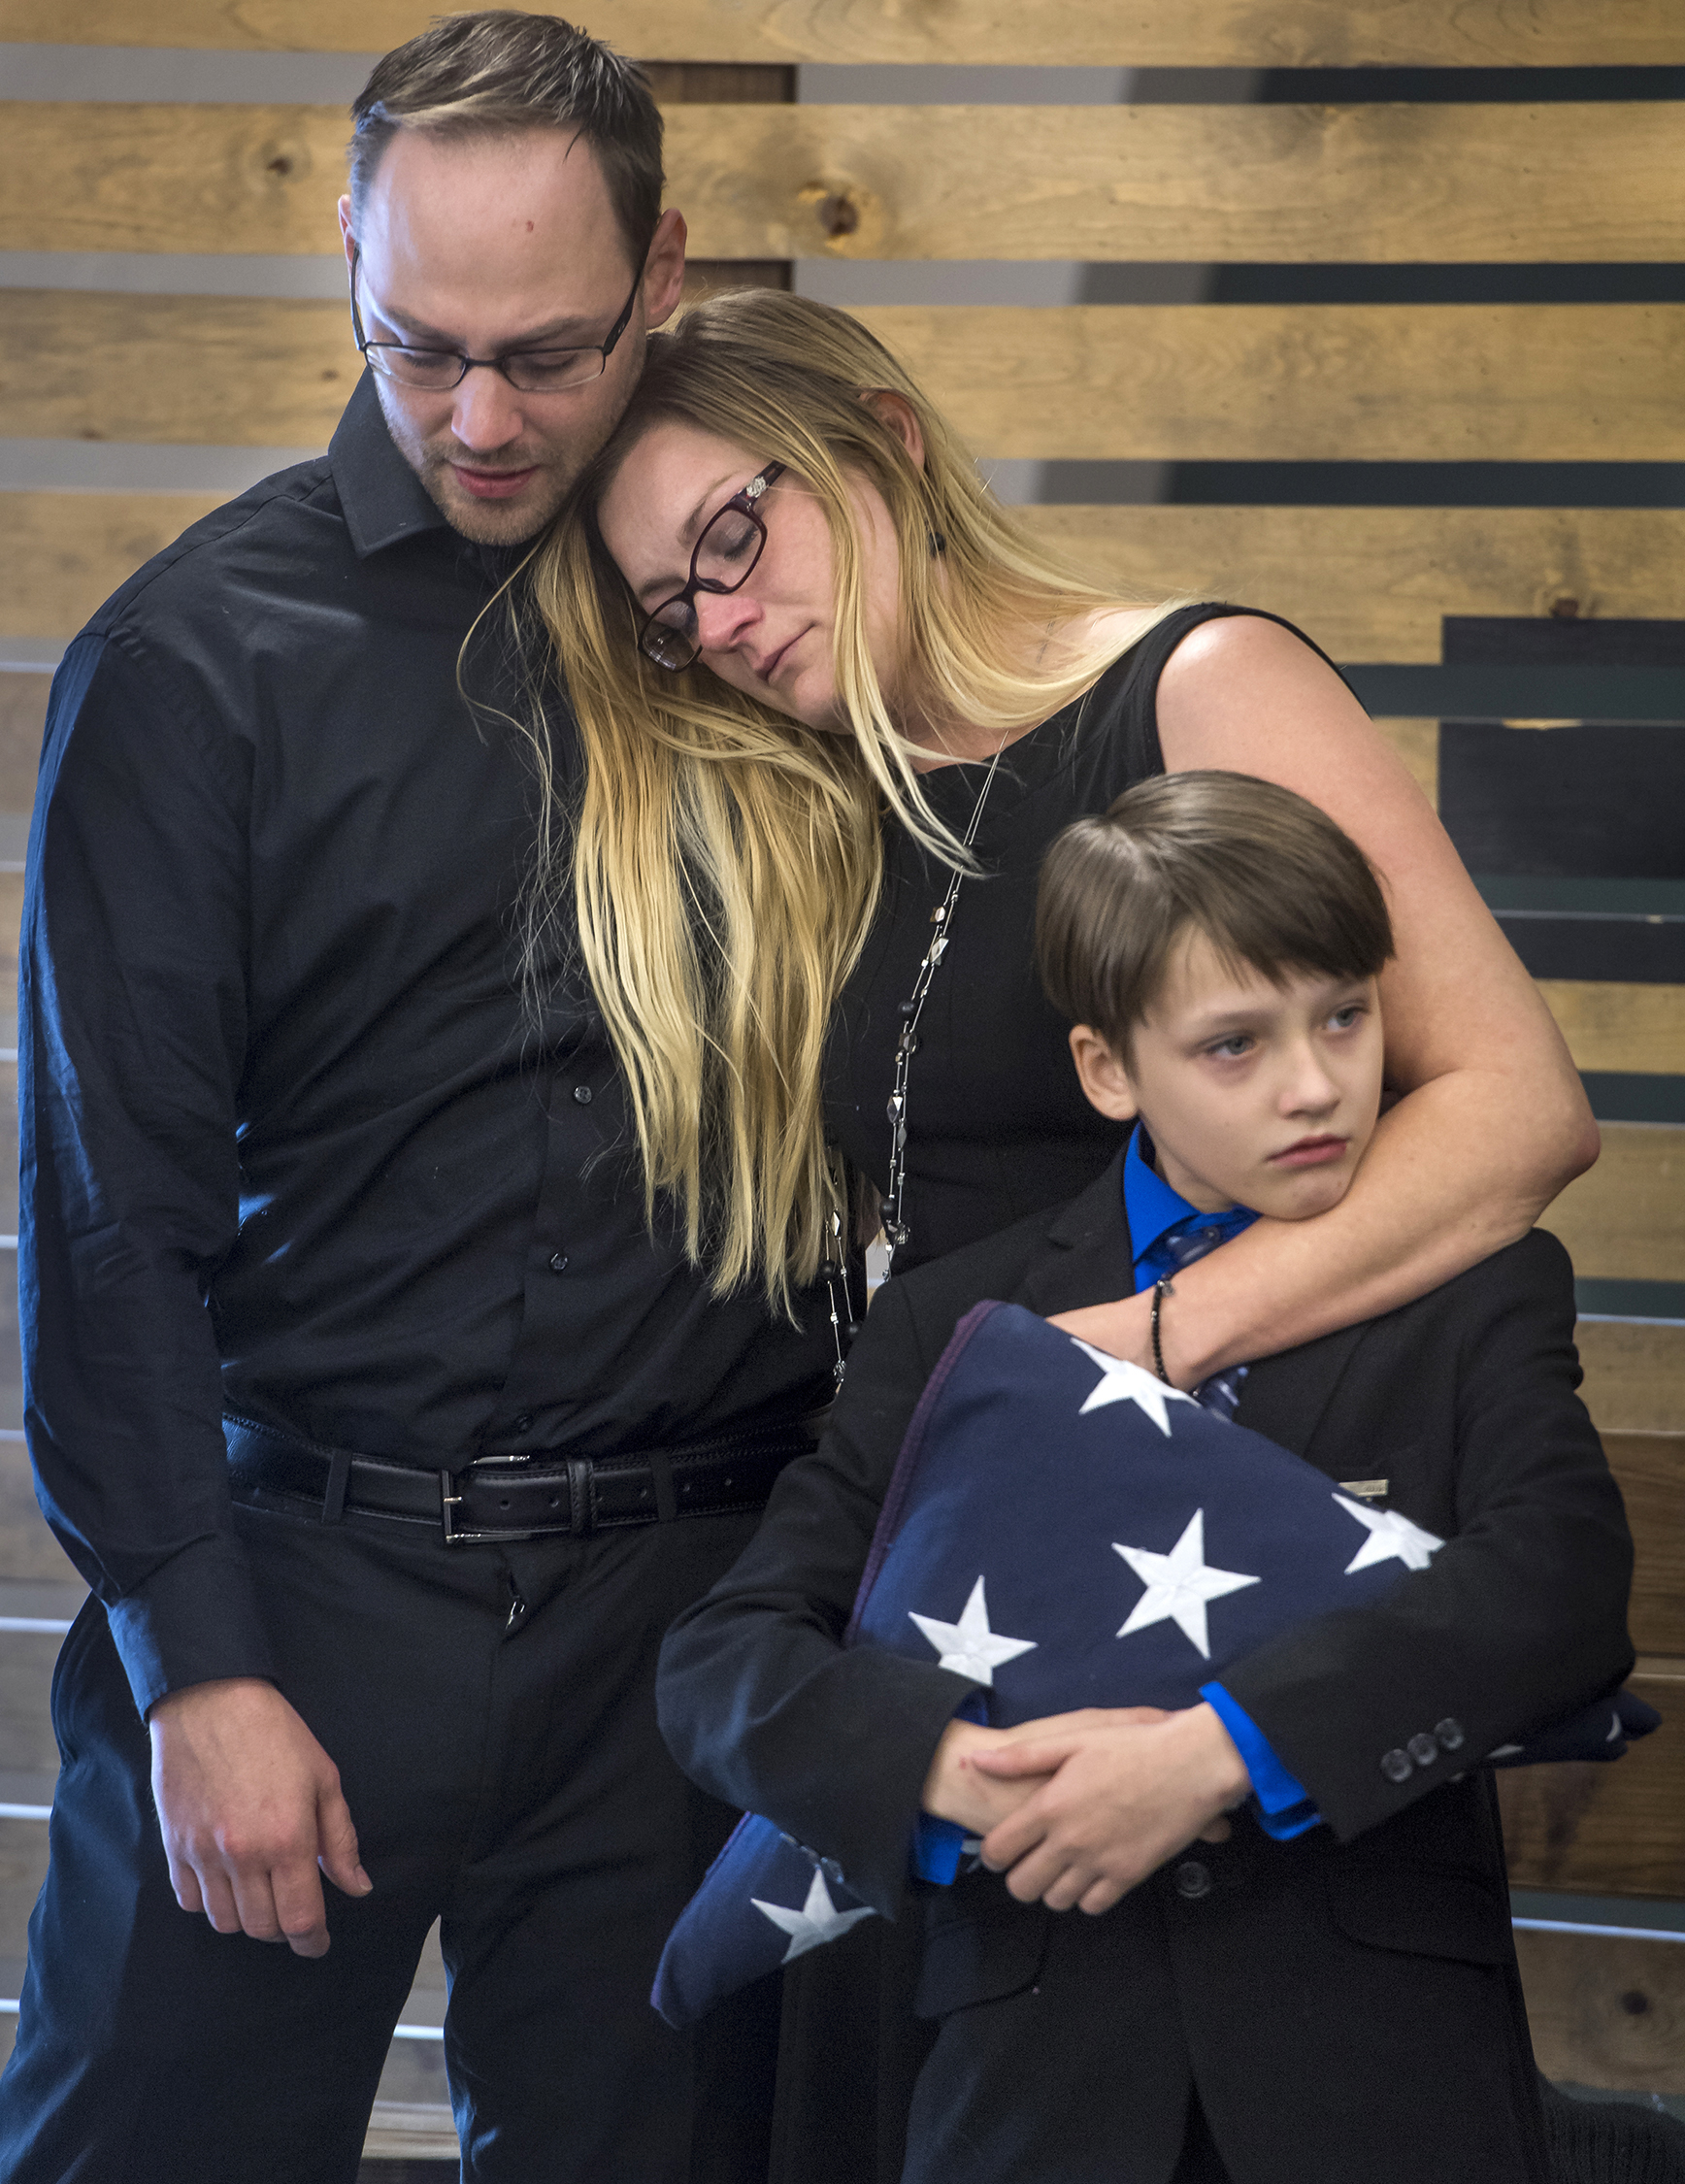 """Mason Robinson, 11, holds the flag presented to him by Marines at the memorial service for his dad and two sisters who died in a house fire last week in rural Tennessee. Mason and his mom Elizabeth """"Angel"""" Robinson, pictured, escaped the blaze. They are with Robinson's brother Jeremy Ward at a memorial service in Santa Ana on Wednesday, Dec  20, 2017."""